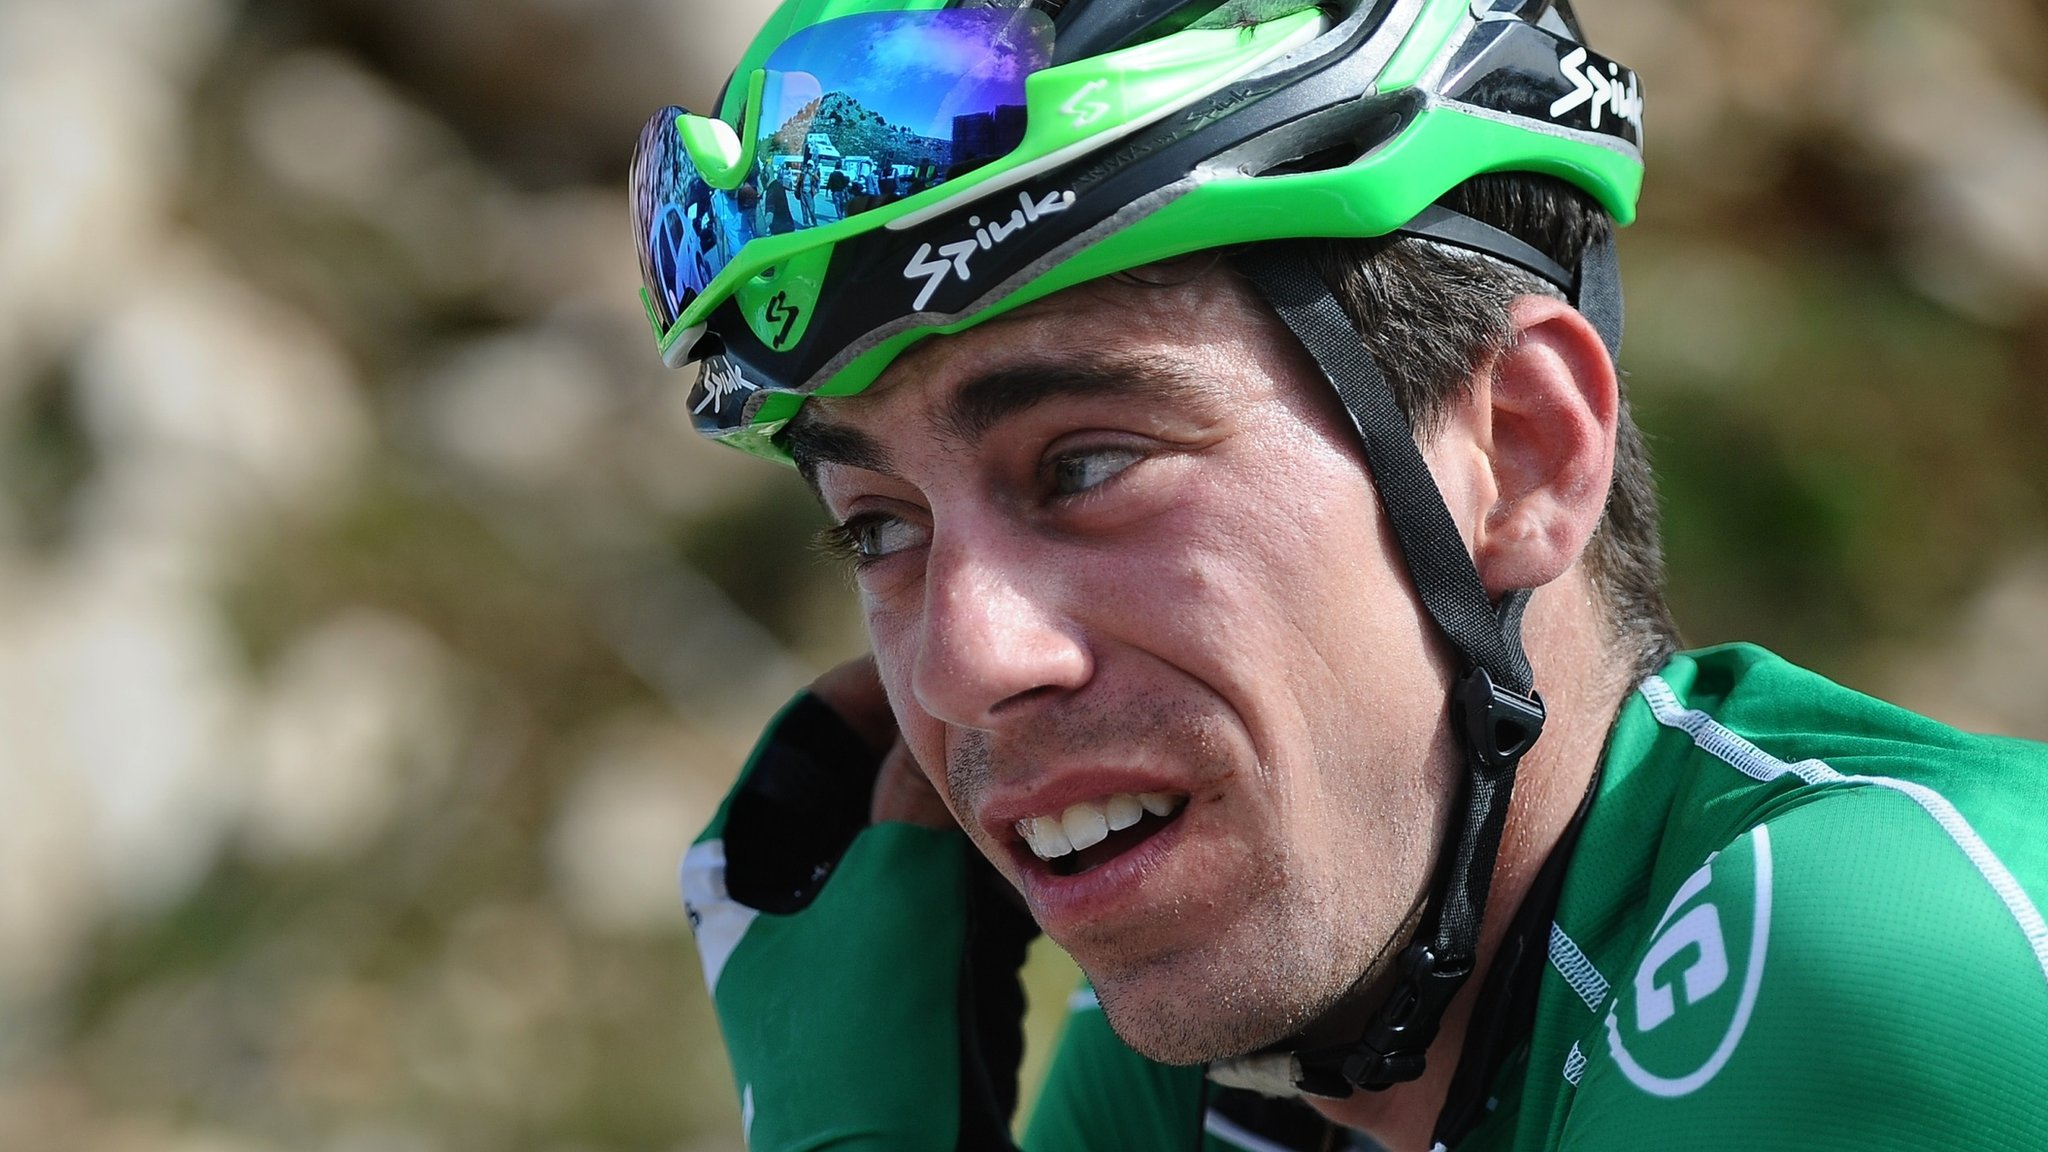 Jaime Roson banned for four years over 'adverse analytical finding'